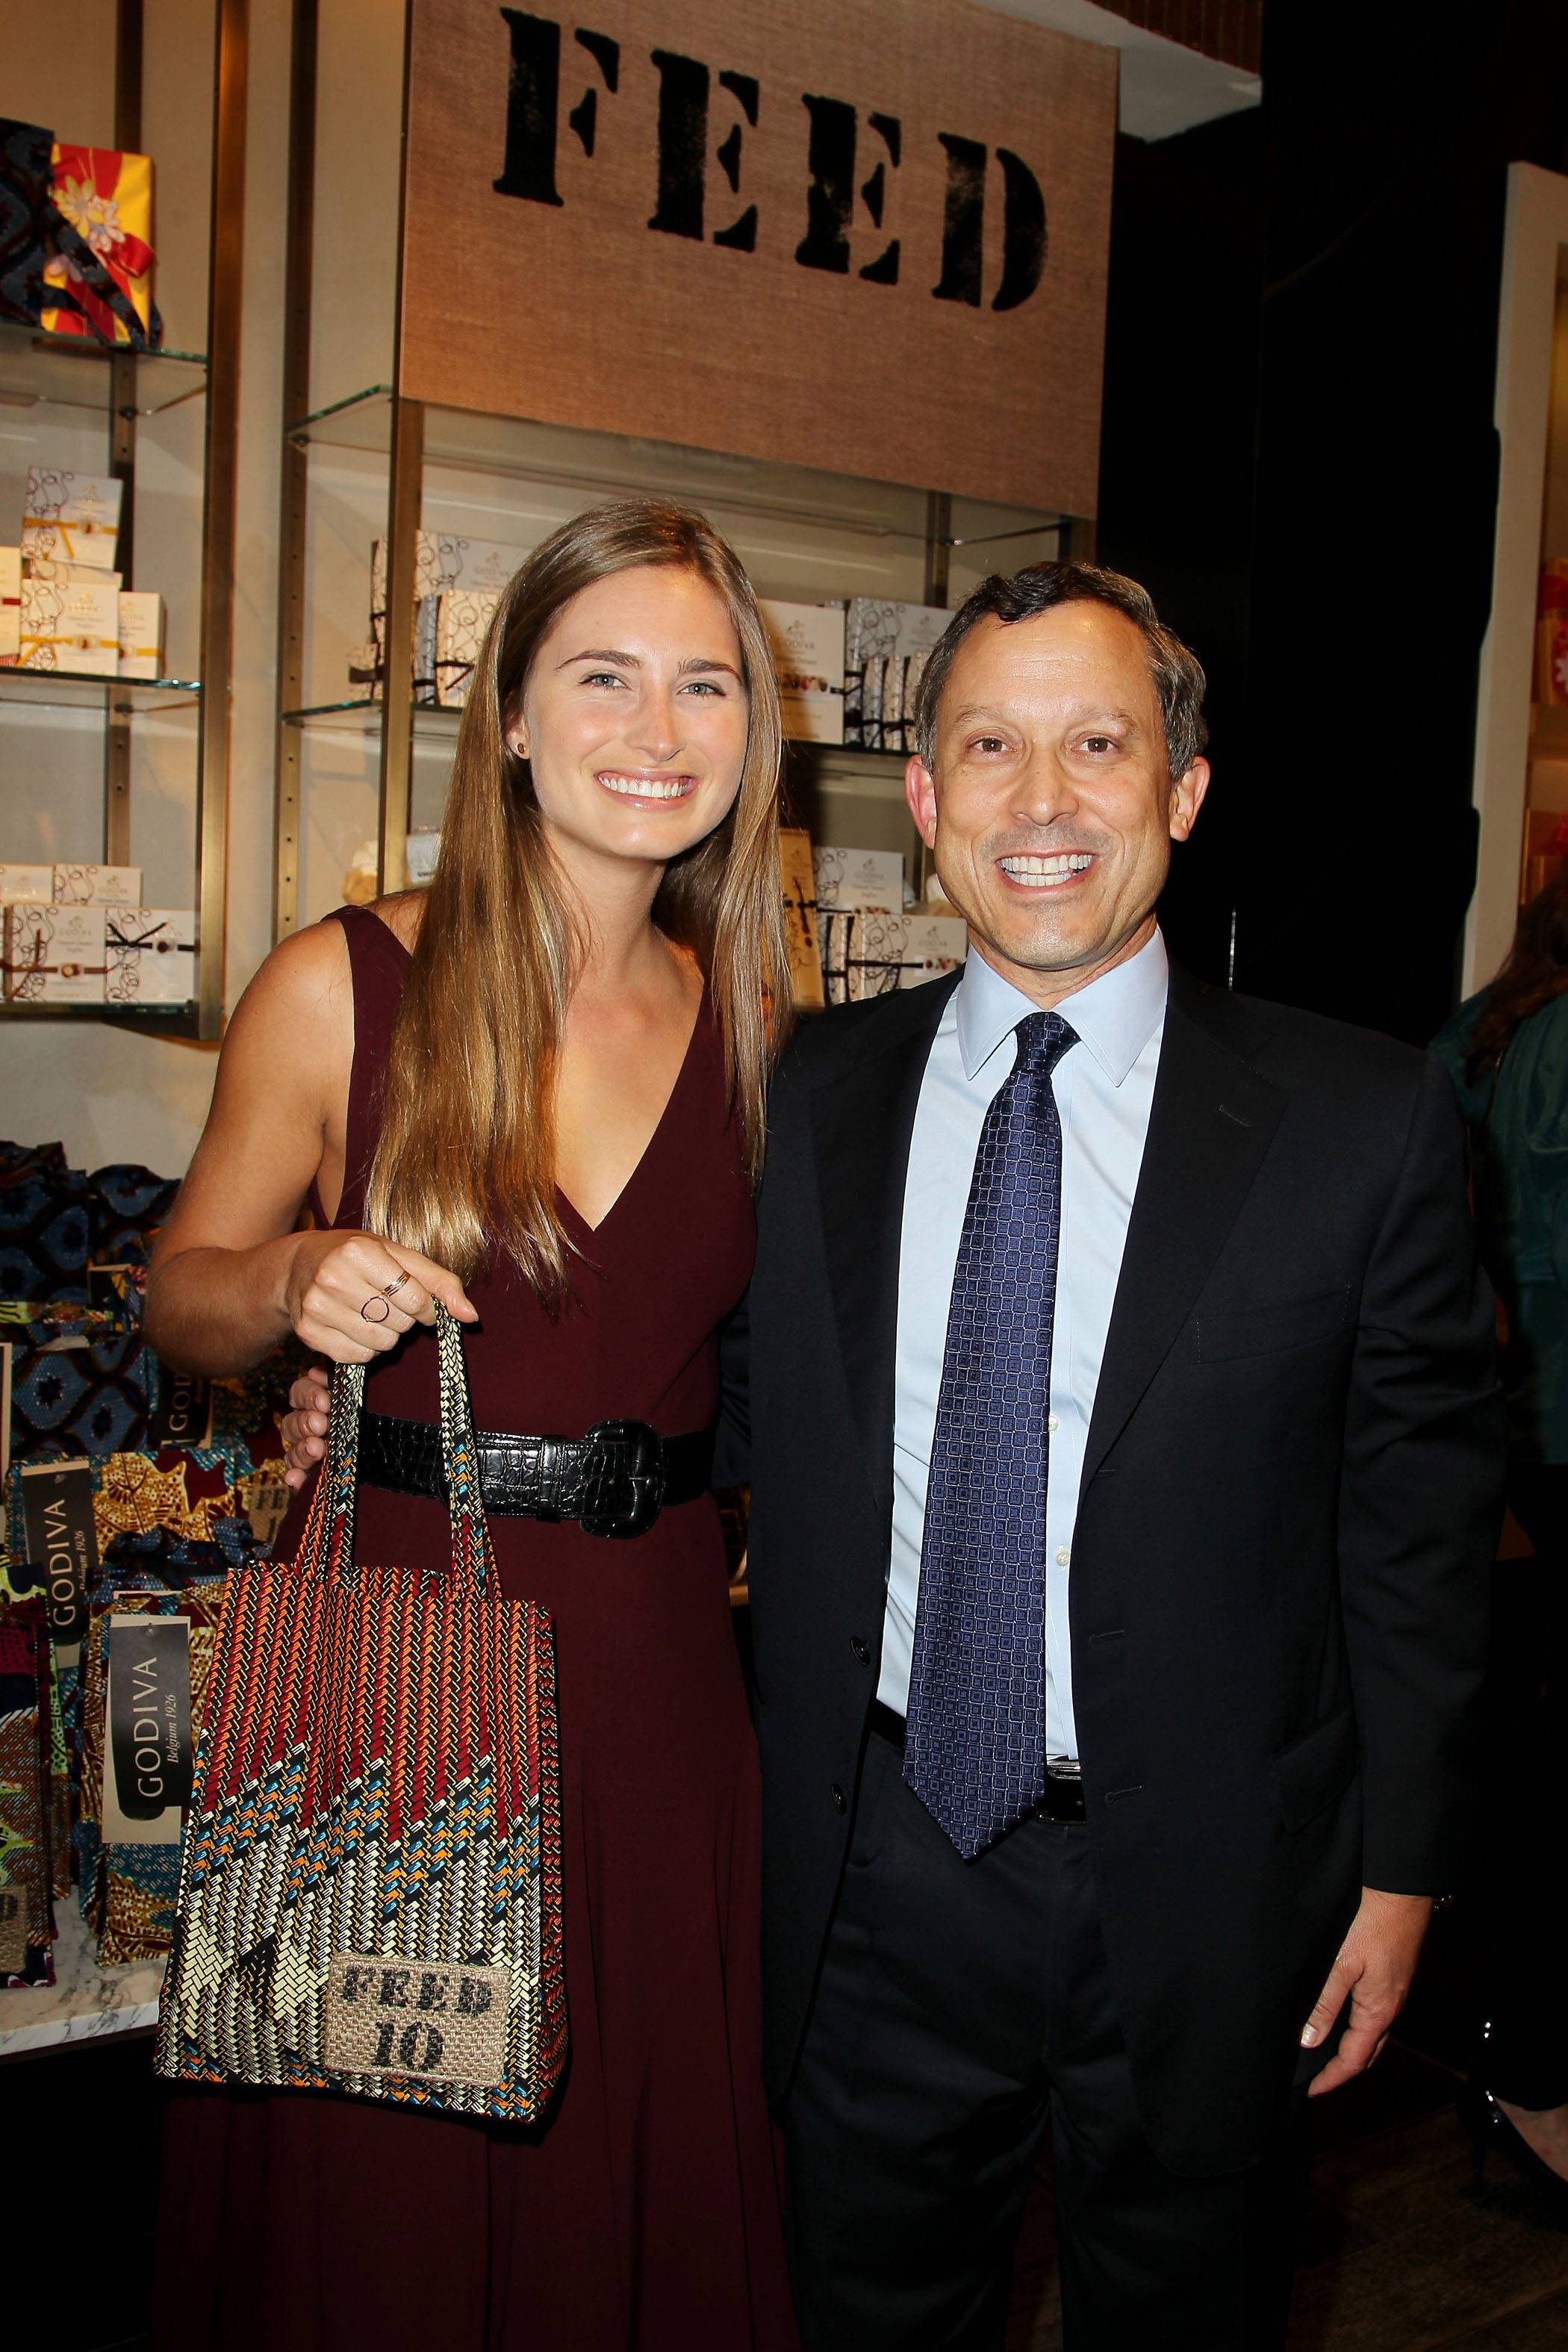 Haute 100 New York Updates: Lauren Bush Lauren Partners with Godiva on Philanthropy Initiative